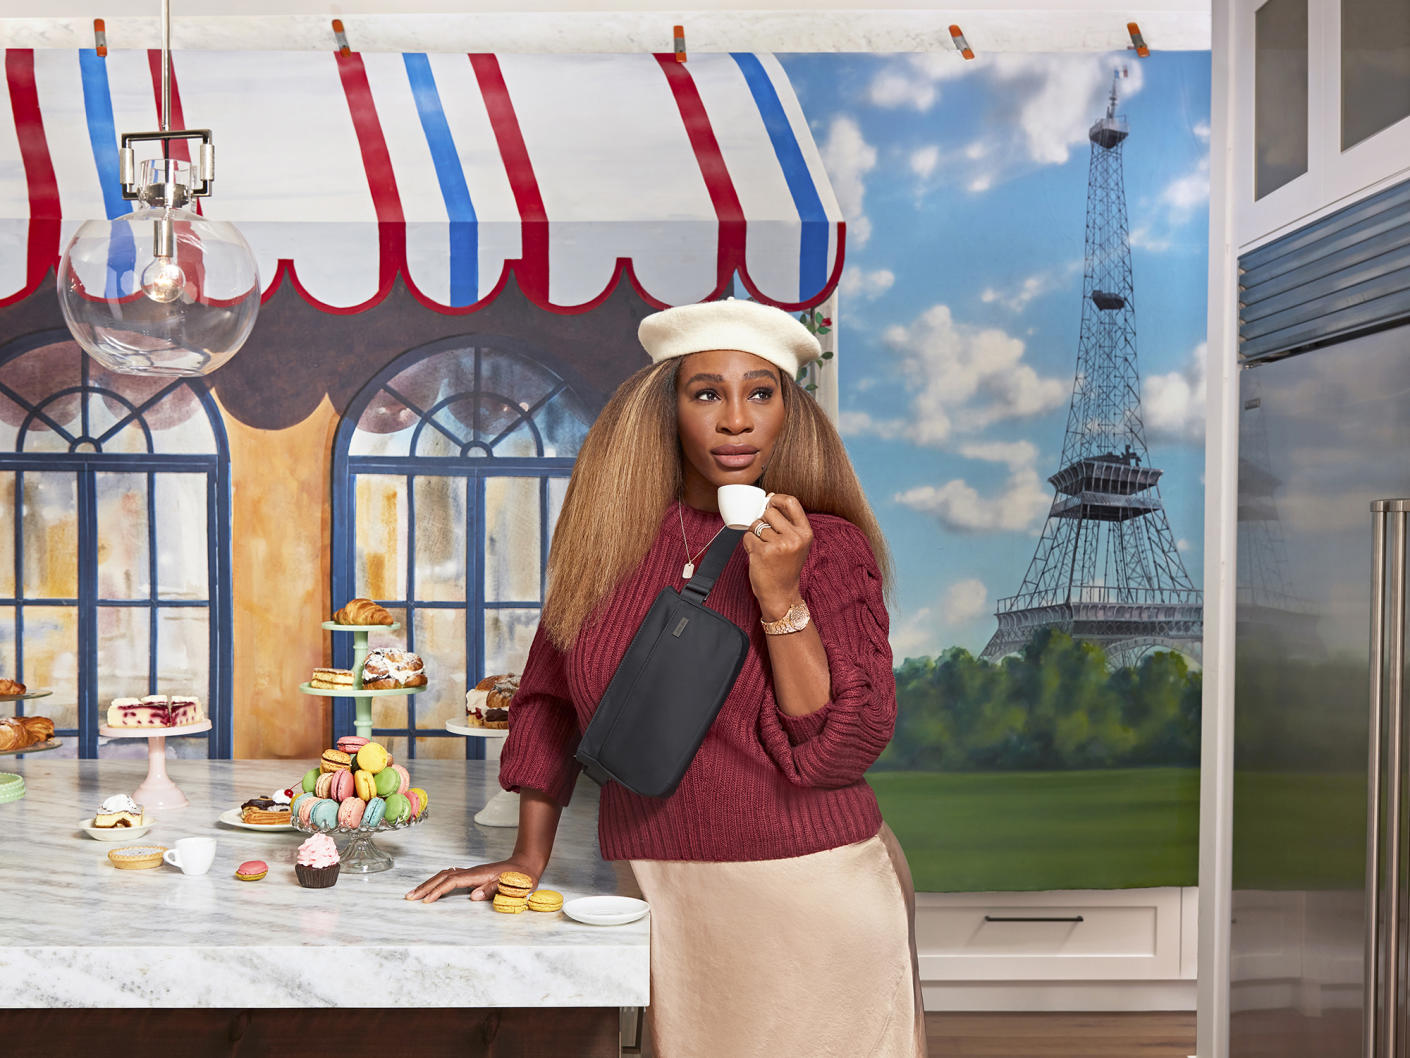 Serena Williams sipping a cup of coffee outside a cafe wearing a crossbody travel bag and Eiffel tower in the distance.